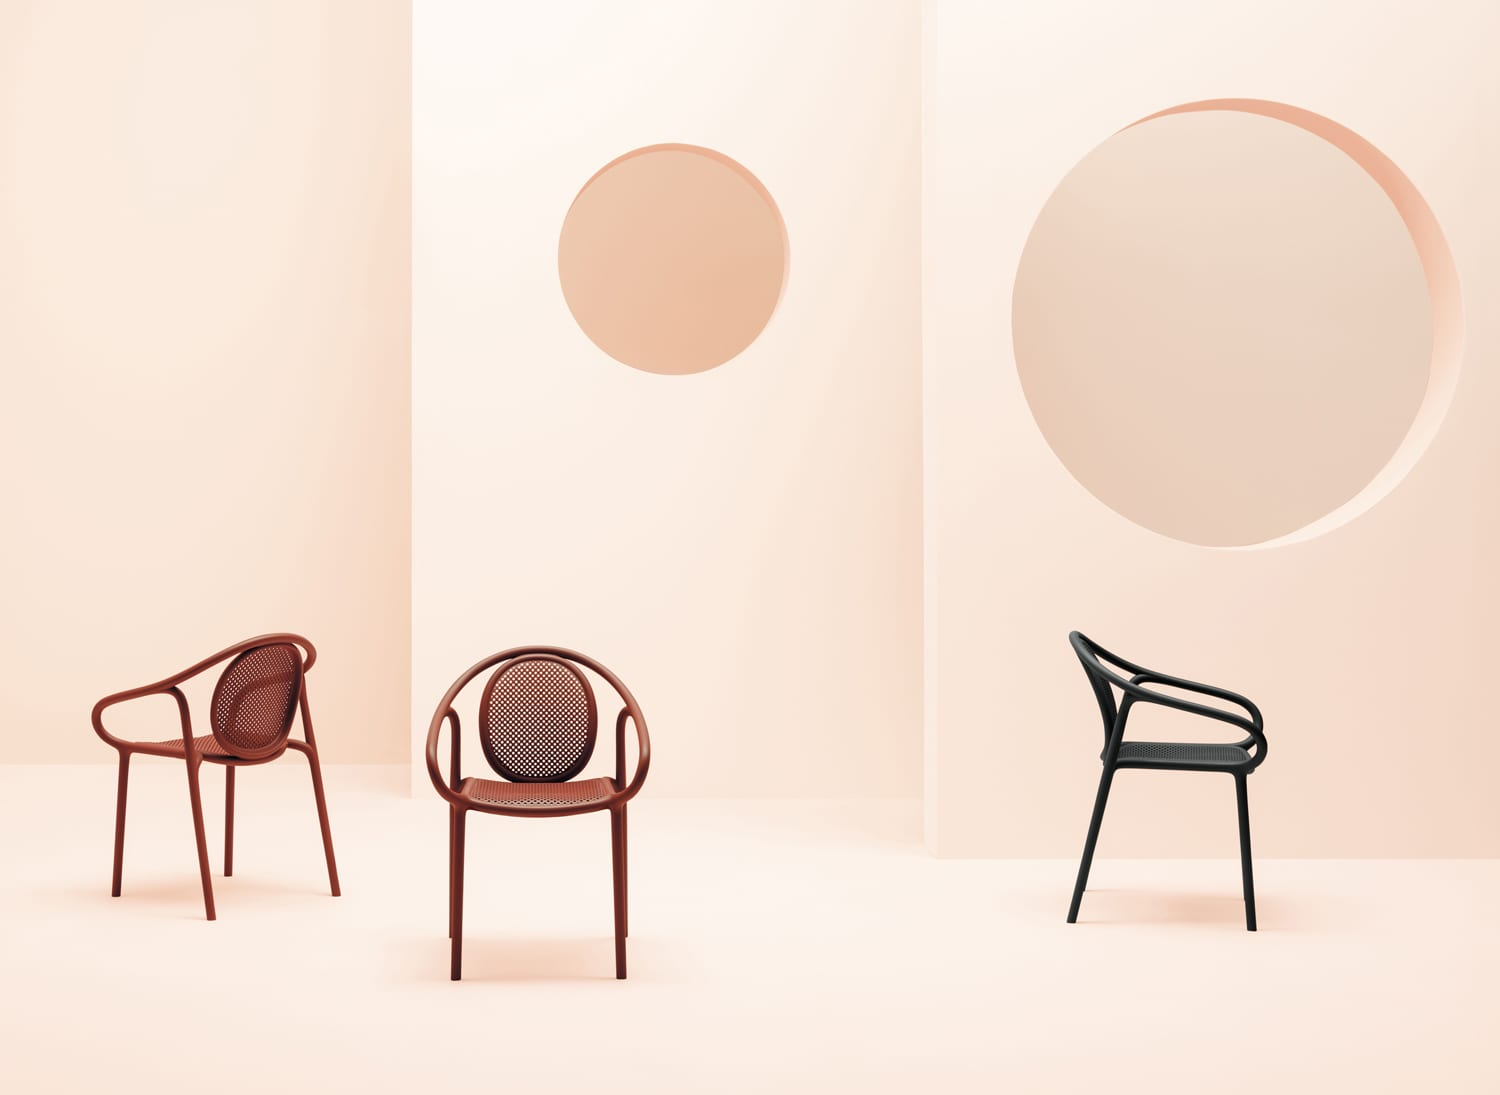 Remind Chair by Pedral at Maison & Objet 2019 | Yellowtrace